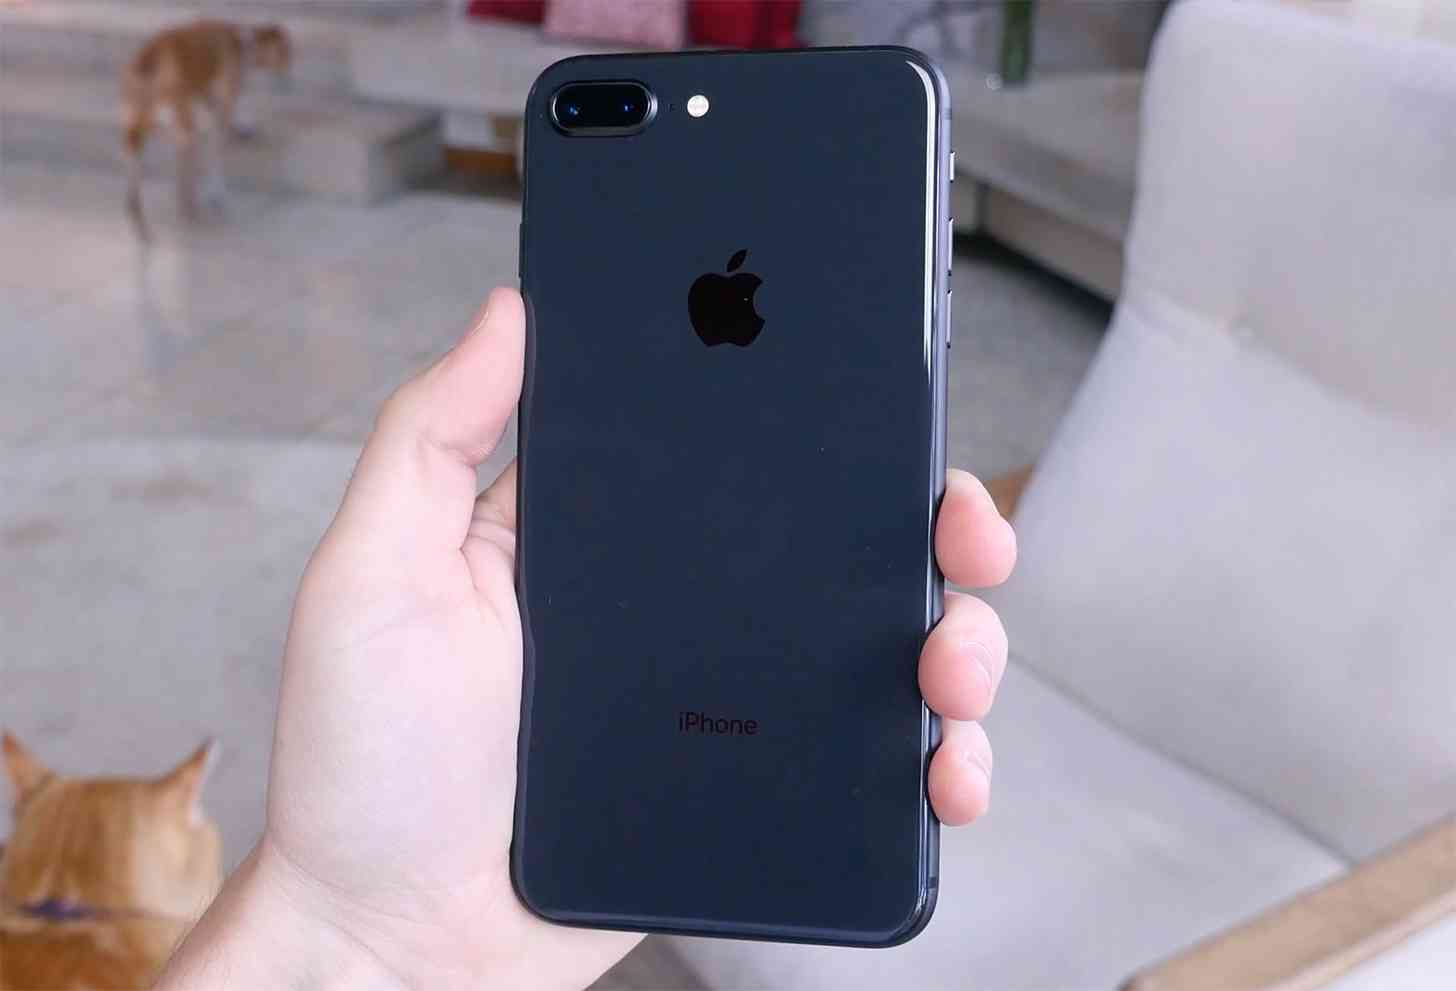 iPhone 8 Plus hands-on video